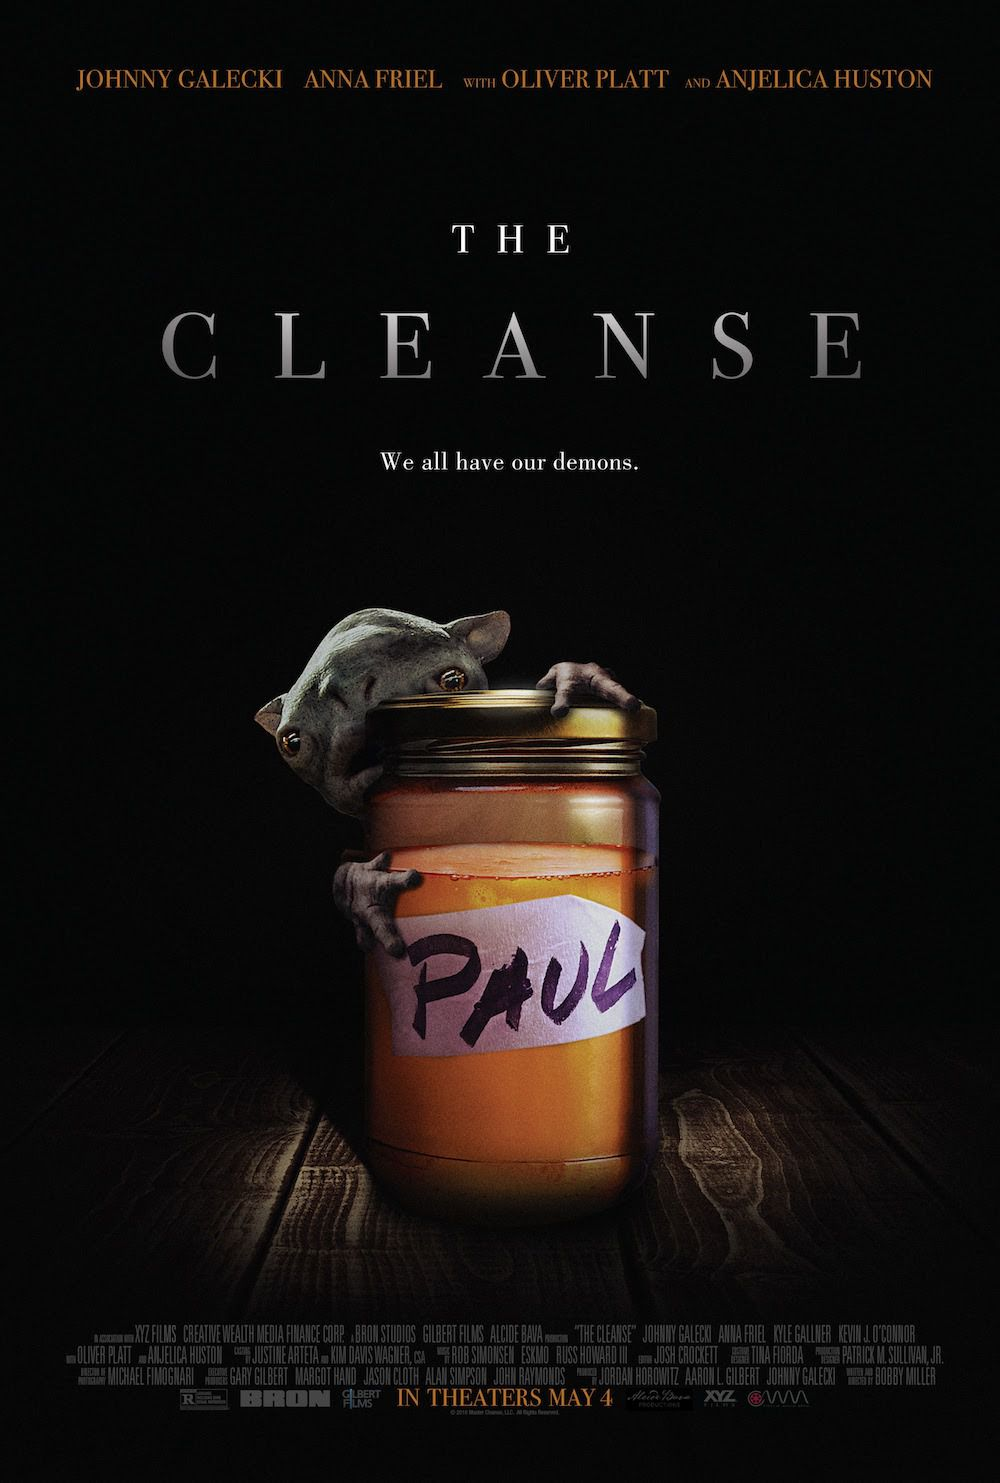 The Master Cleanse - let's get Pure - Cast: Johnny Galecki, Anna Friel, Anjelica Huston, Kyle Gallner, Oliver Platt - film poster 2018